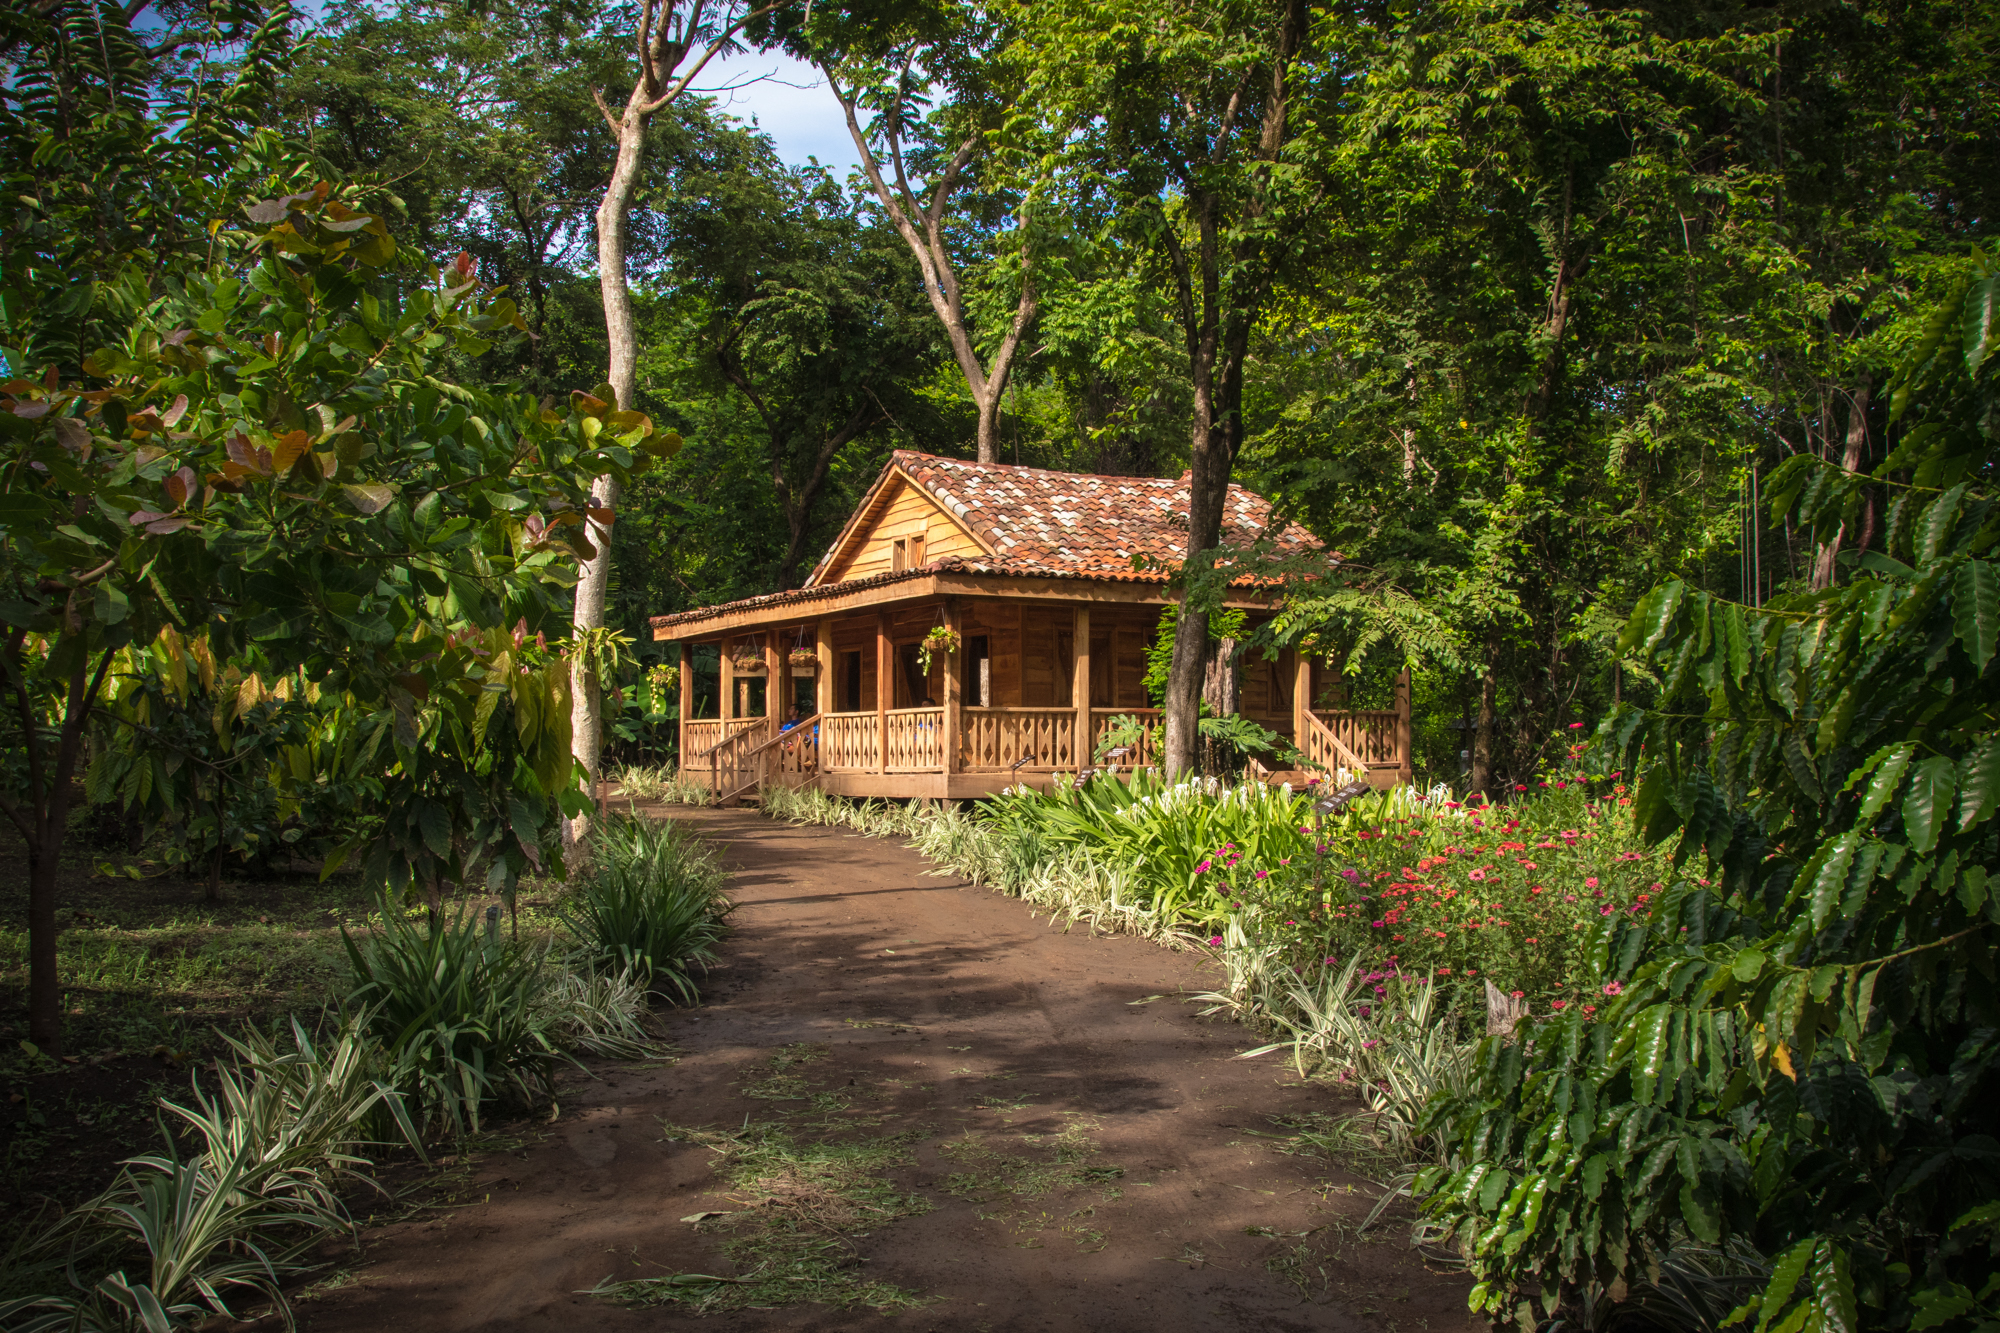 Wood Costa Rican House inside the Botanical Garden